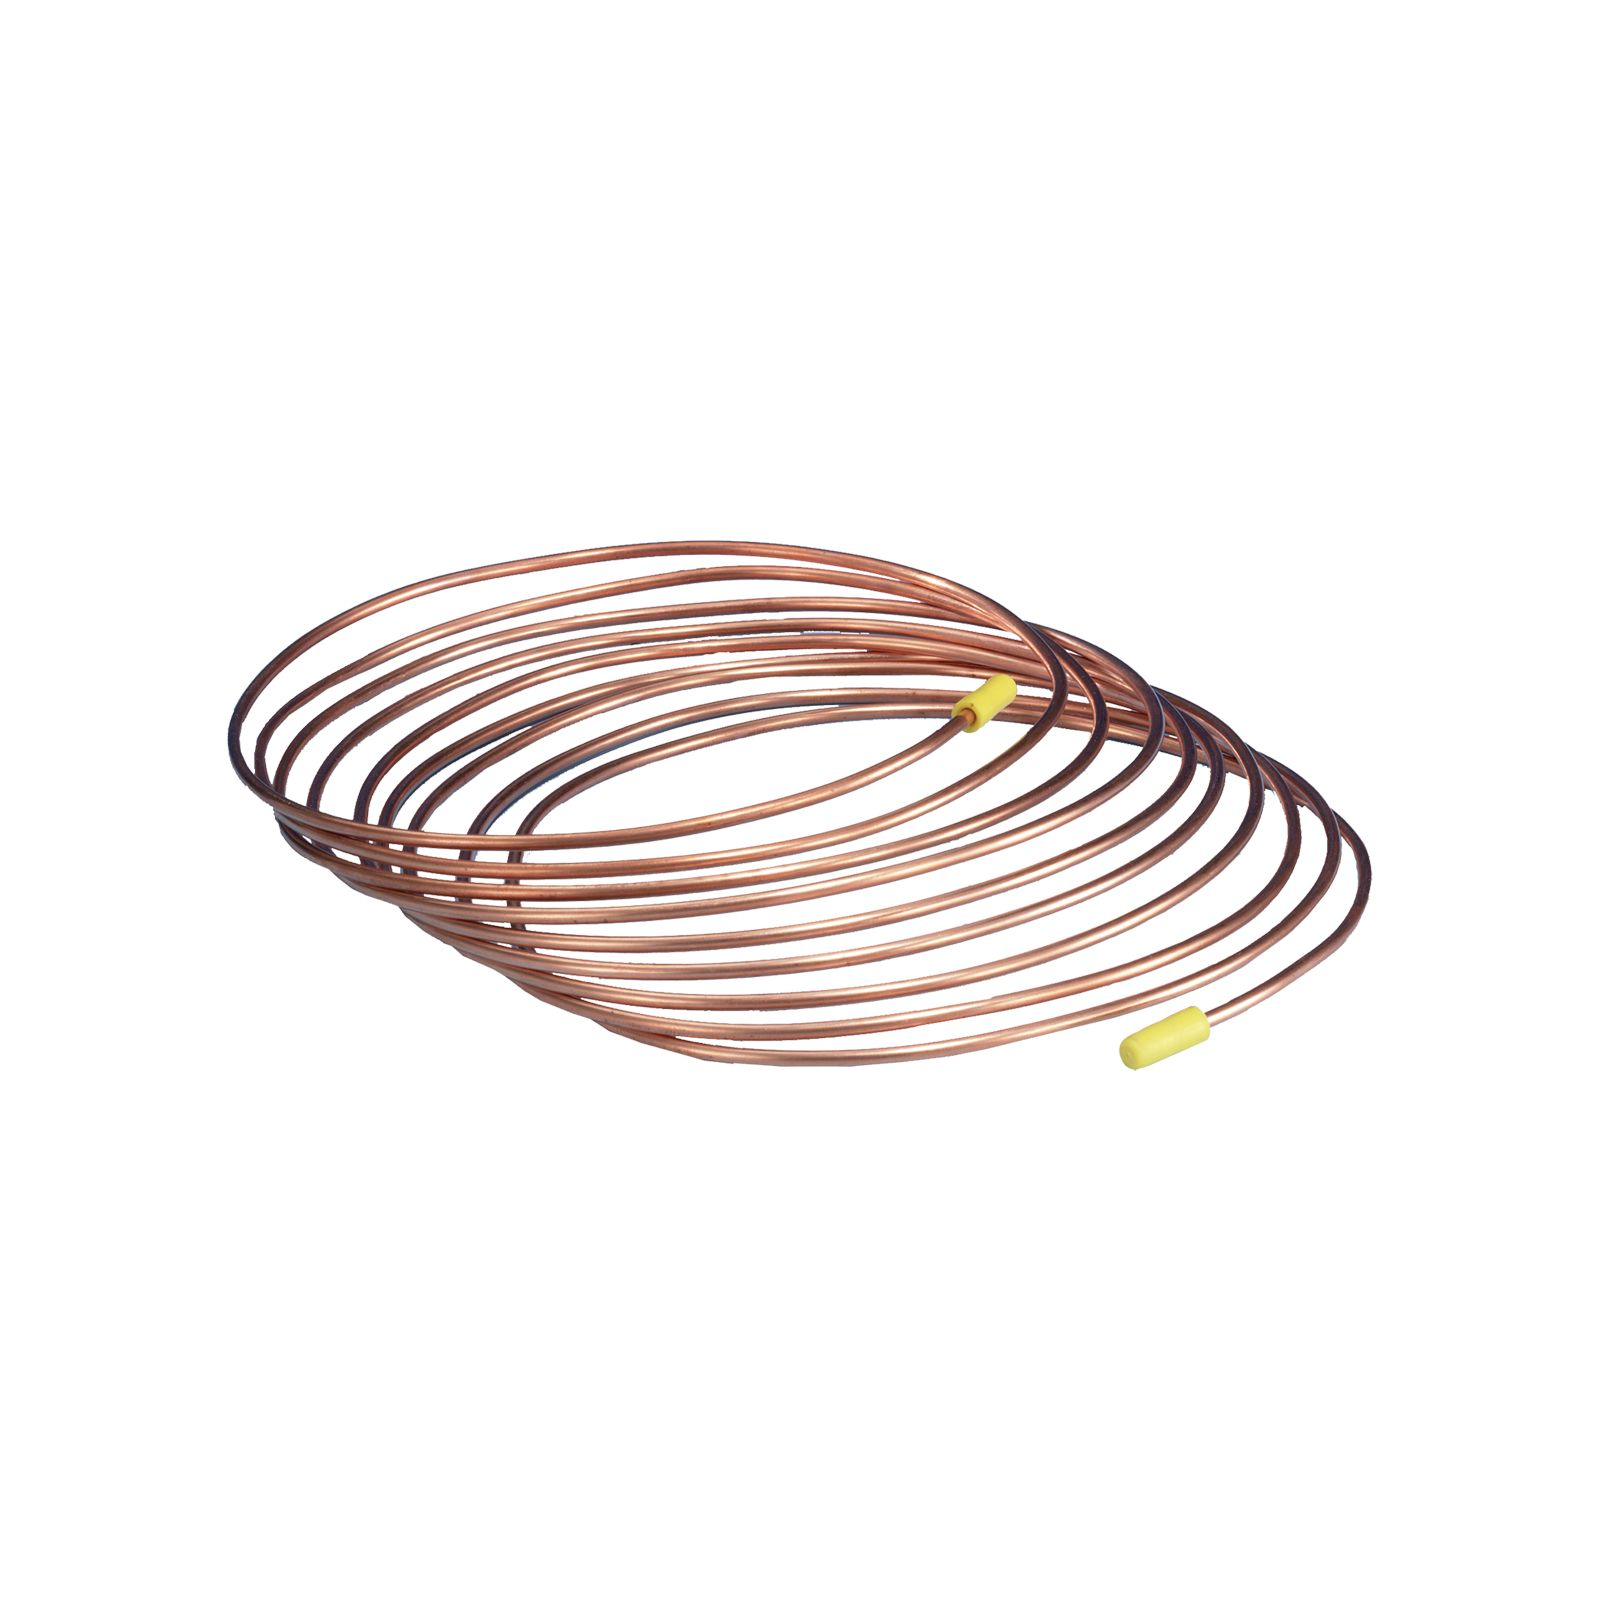 "Supco BC4 -  BC Series Bullet Restricto Capillary Tubing .064"" I.D. x 12'"